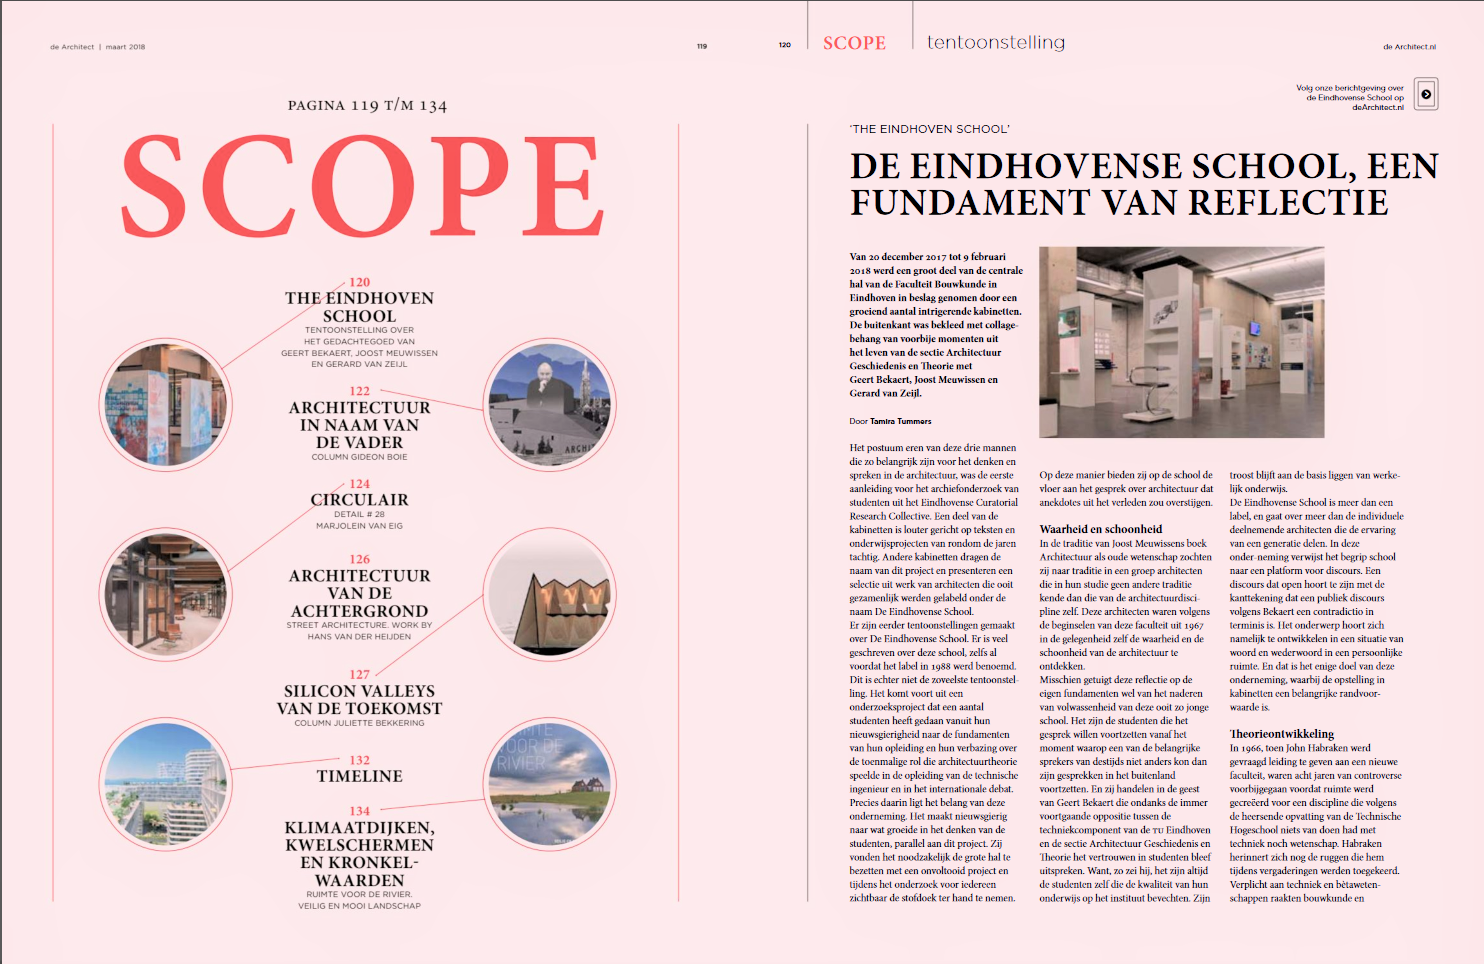 The Eindhoven School, a Foundation of Reflection - de Architect (February 2018)